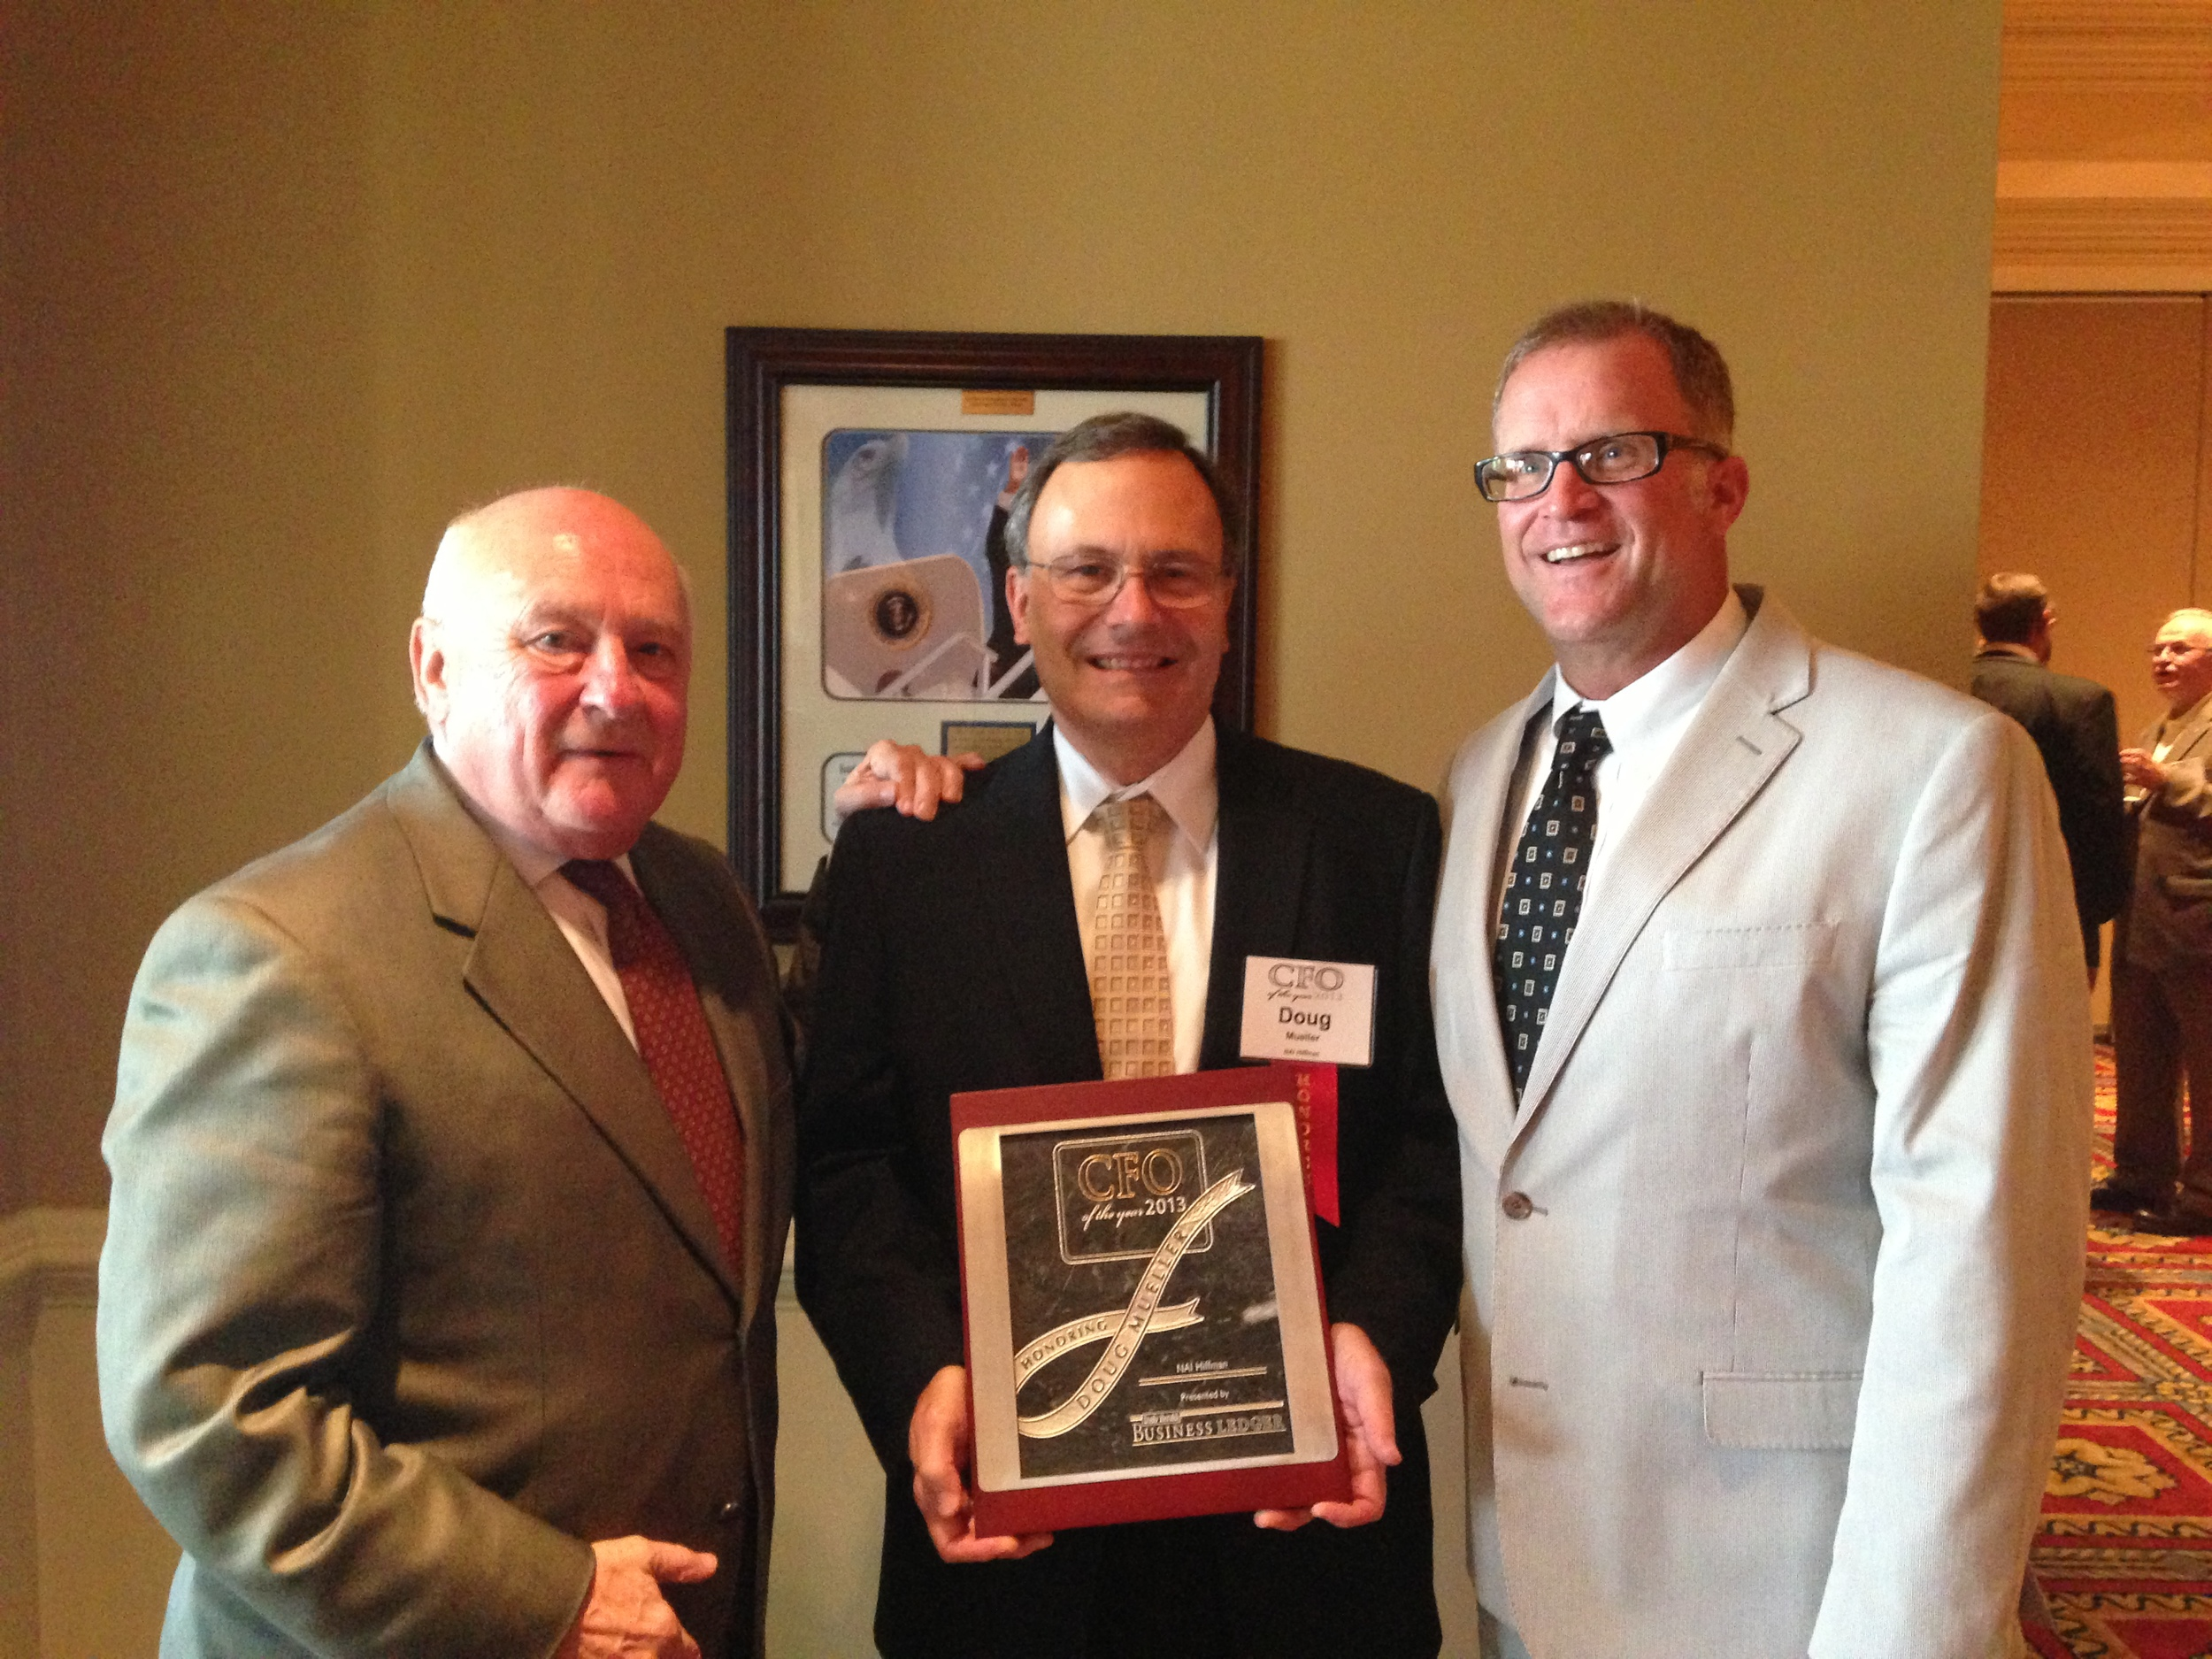 (From left to right) NAI Hiffman Chairman, Dennis Hiffman; CFO, Doug Mueller; DuPage County Board Chairman, Dan Cronin